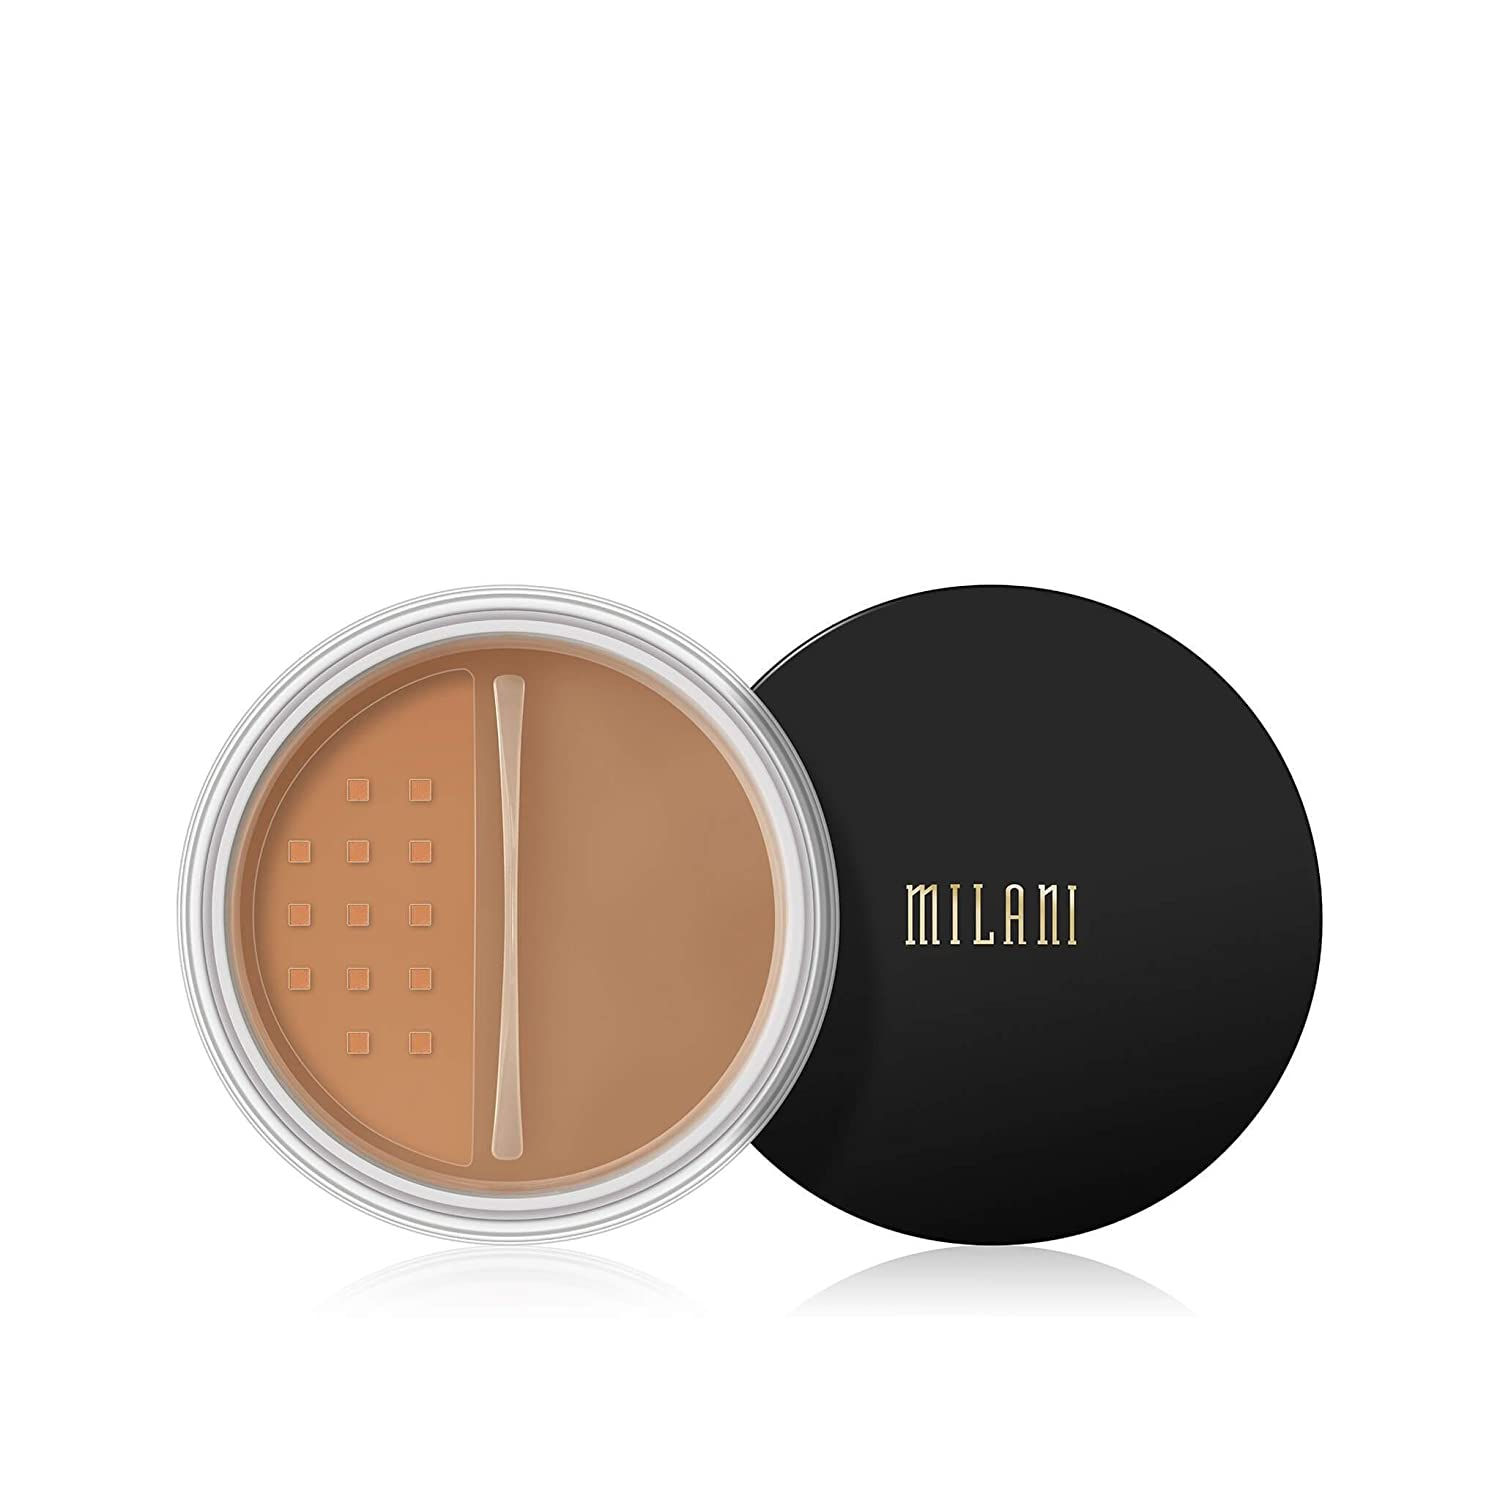 Milani Make It Last Setting Powder - Translucent Medium to Deep (0.12 Ounce) Cruelty-Free Mattifying Face Powder that Sets Makeup for Long-Lasting Wear